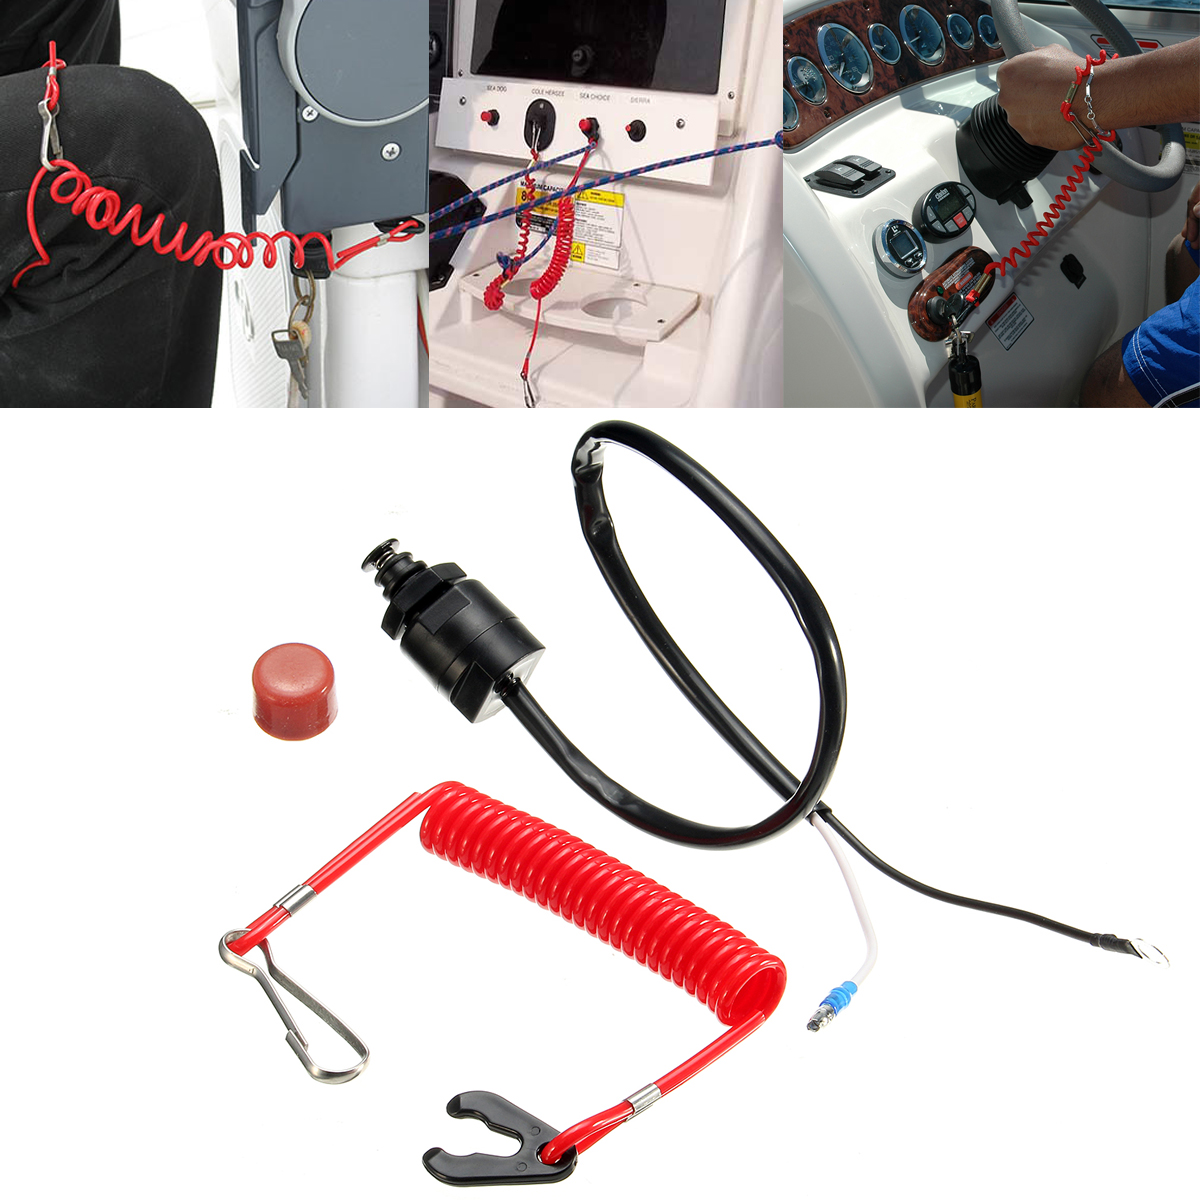 Outboard Cut Off Boat Motor Emergency Kill Stop Switch Safety Tether Wiring Diagram For Yamaha Tohatsu Switches